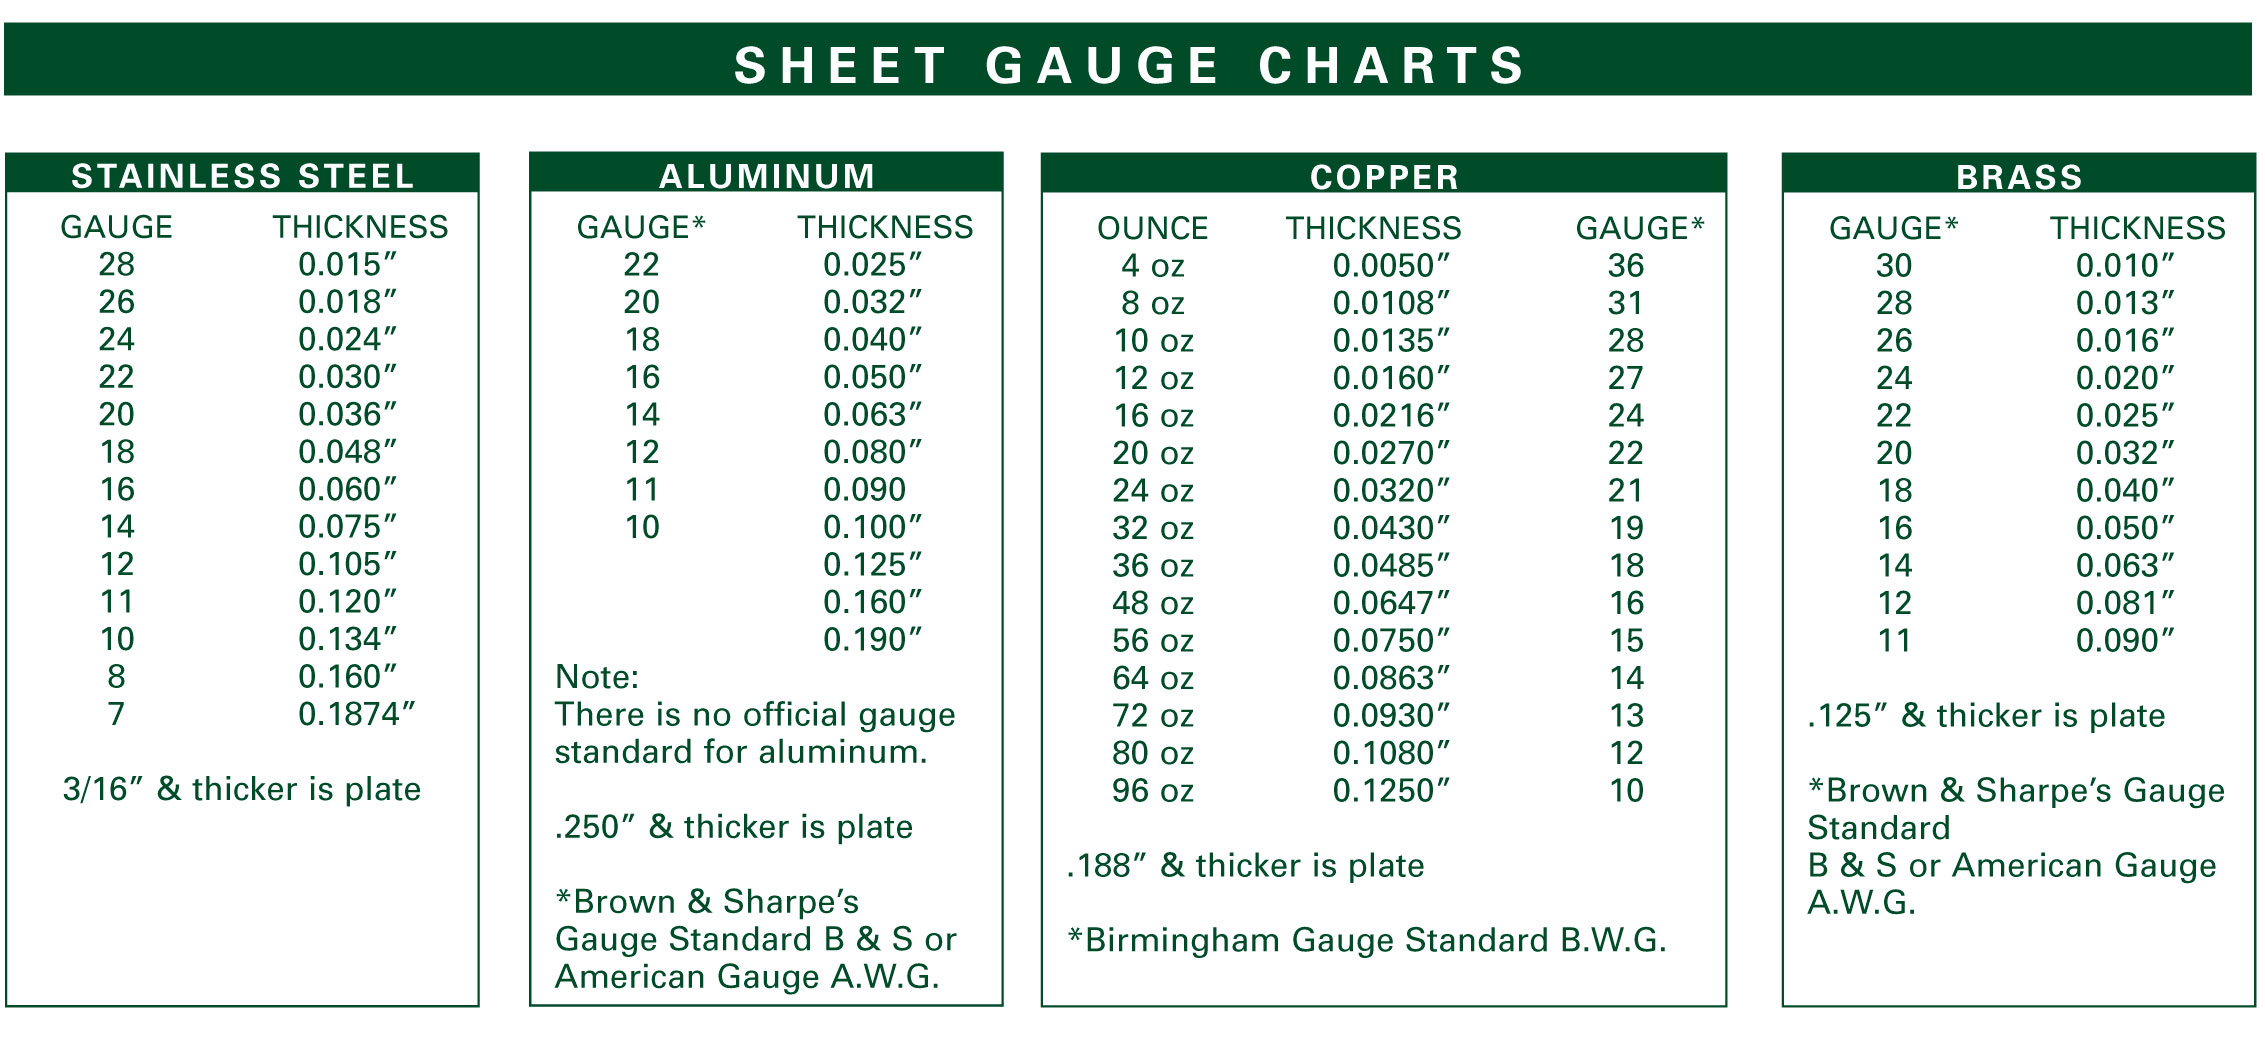 Sheet gauge chart for determining metal gauge from oz designations.